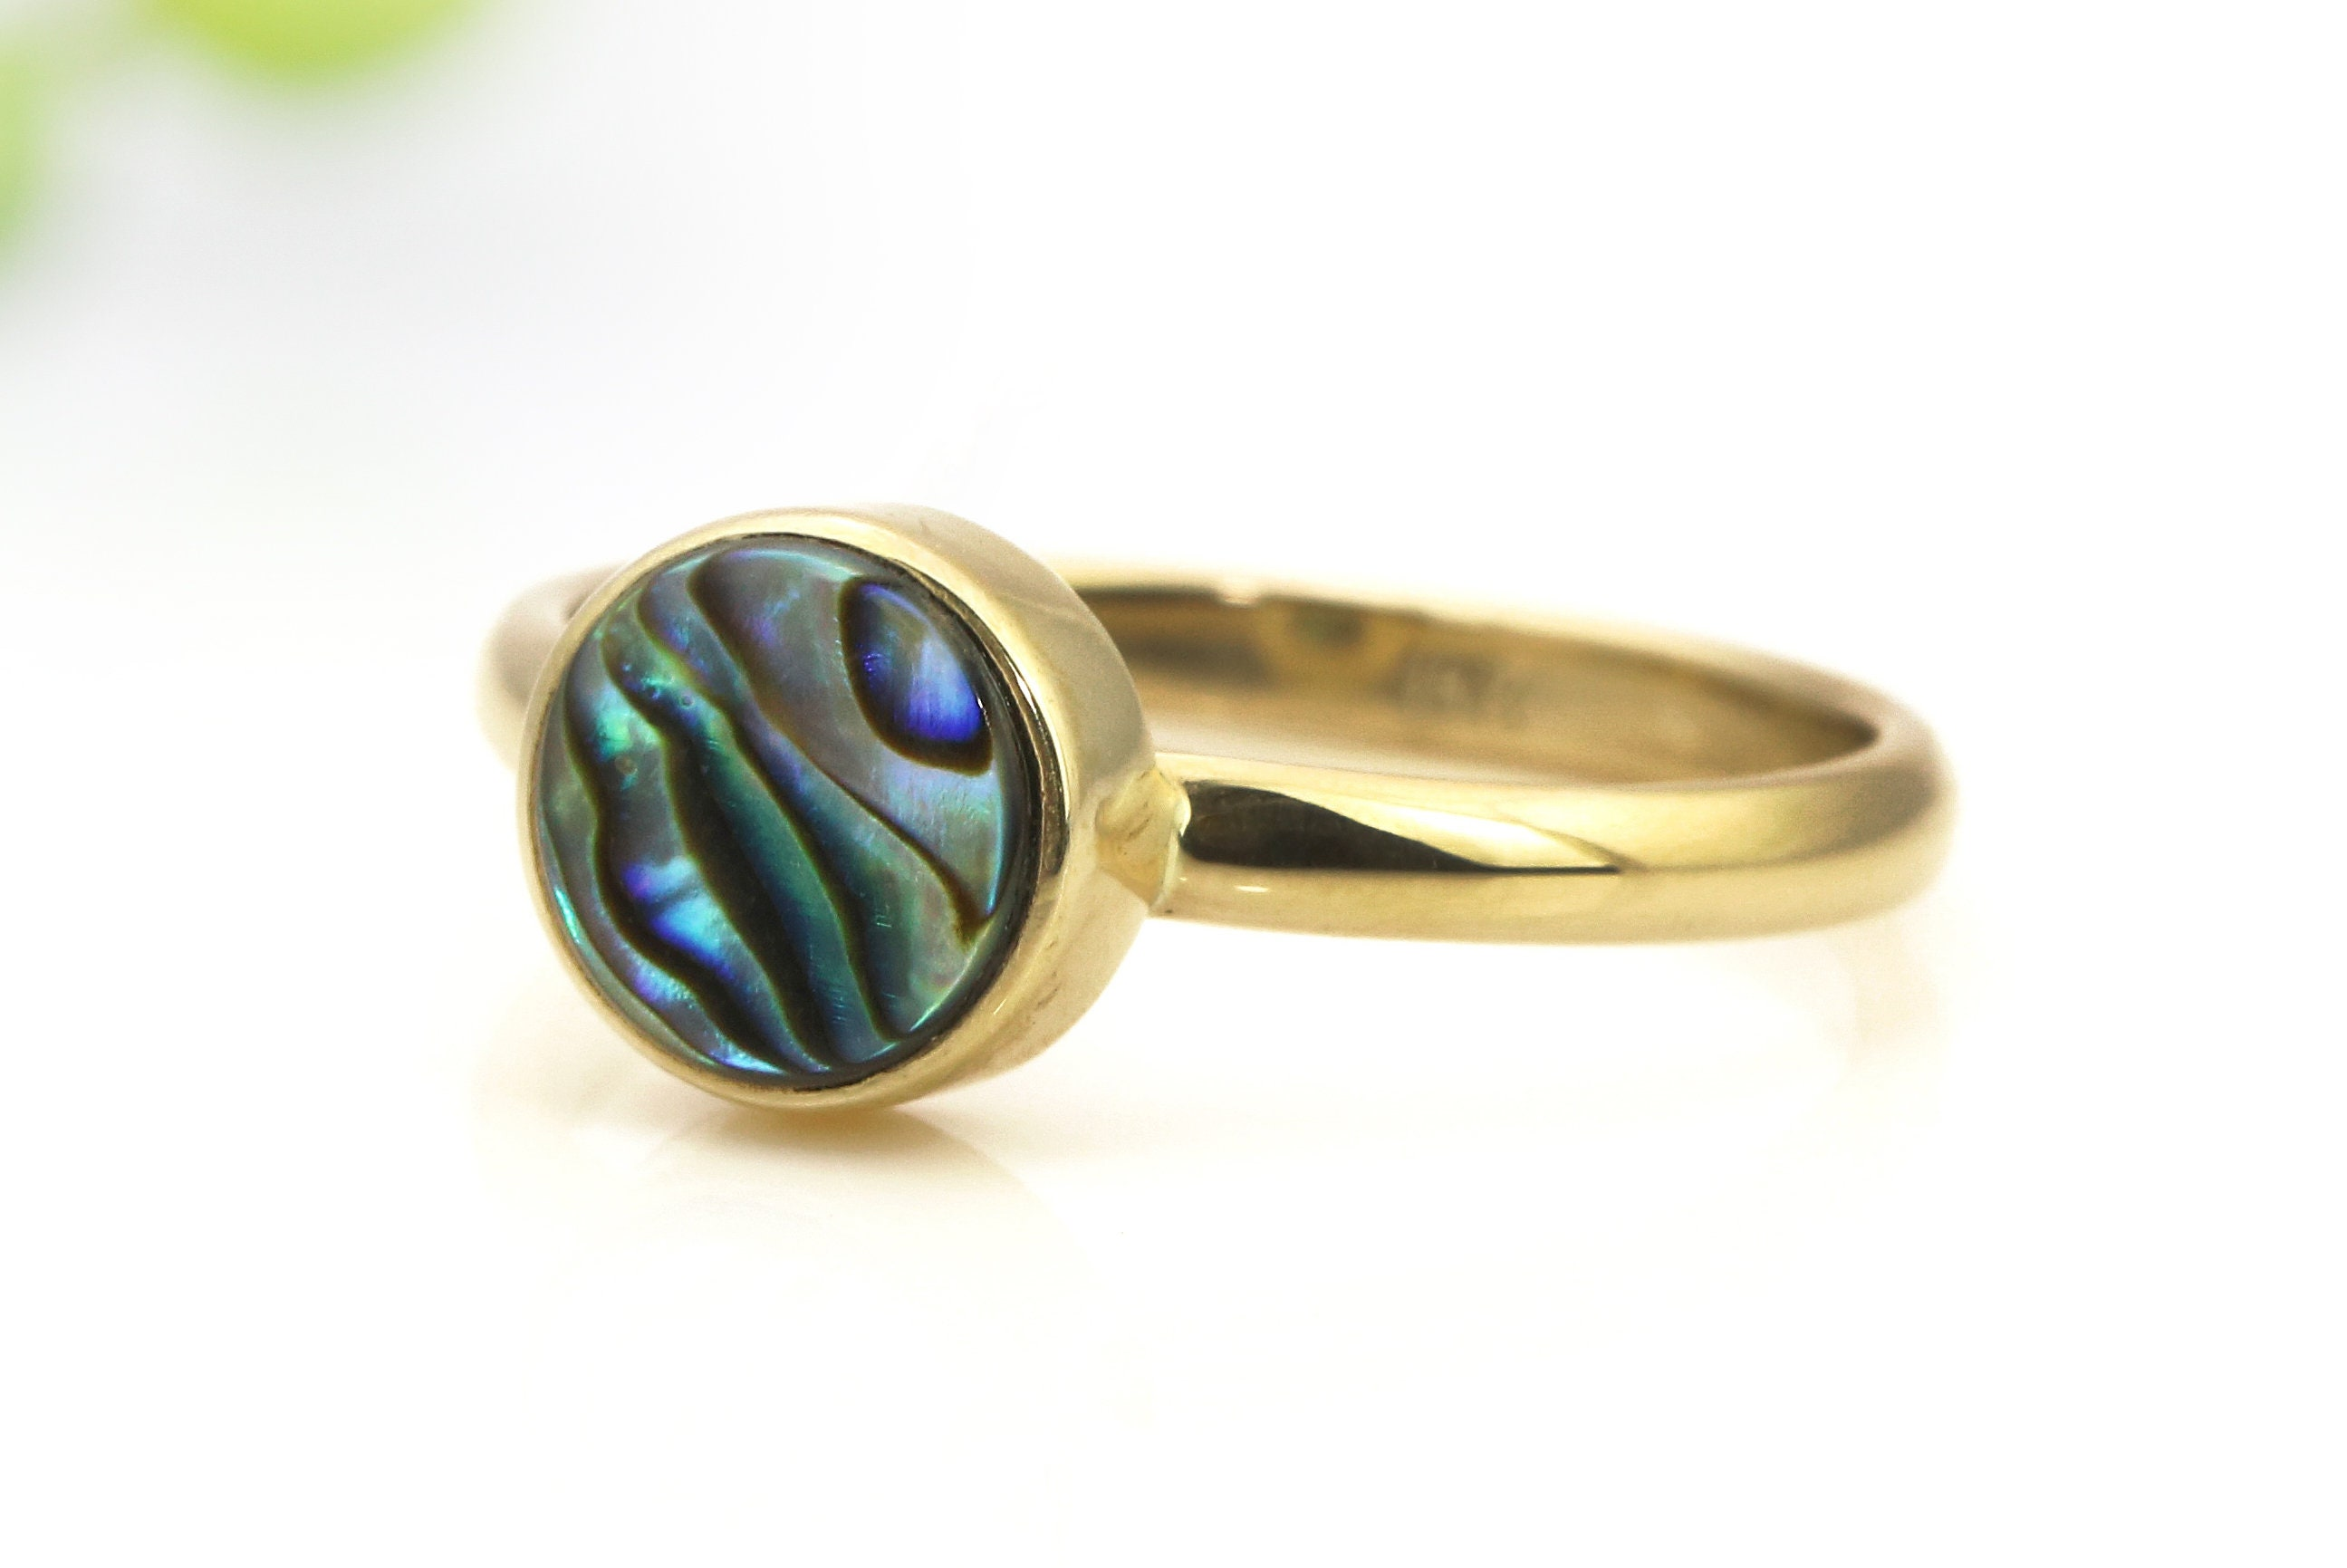 with abalone gold oxidized wedding in lika sterling karat bezel ring set by carat yellow fine silver rings jewelry behar